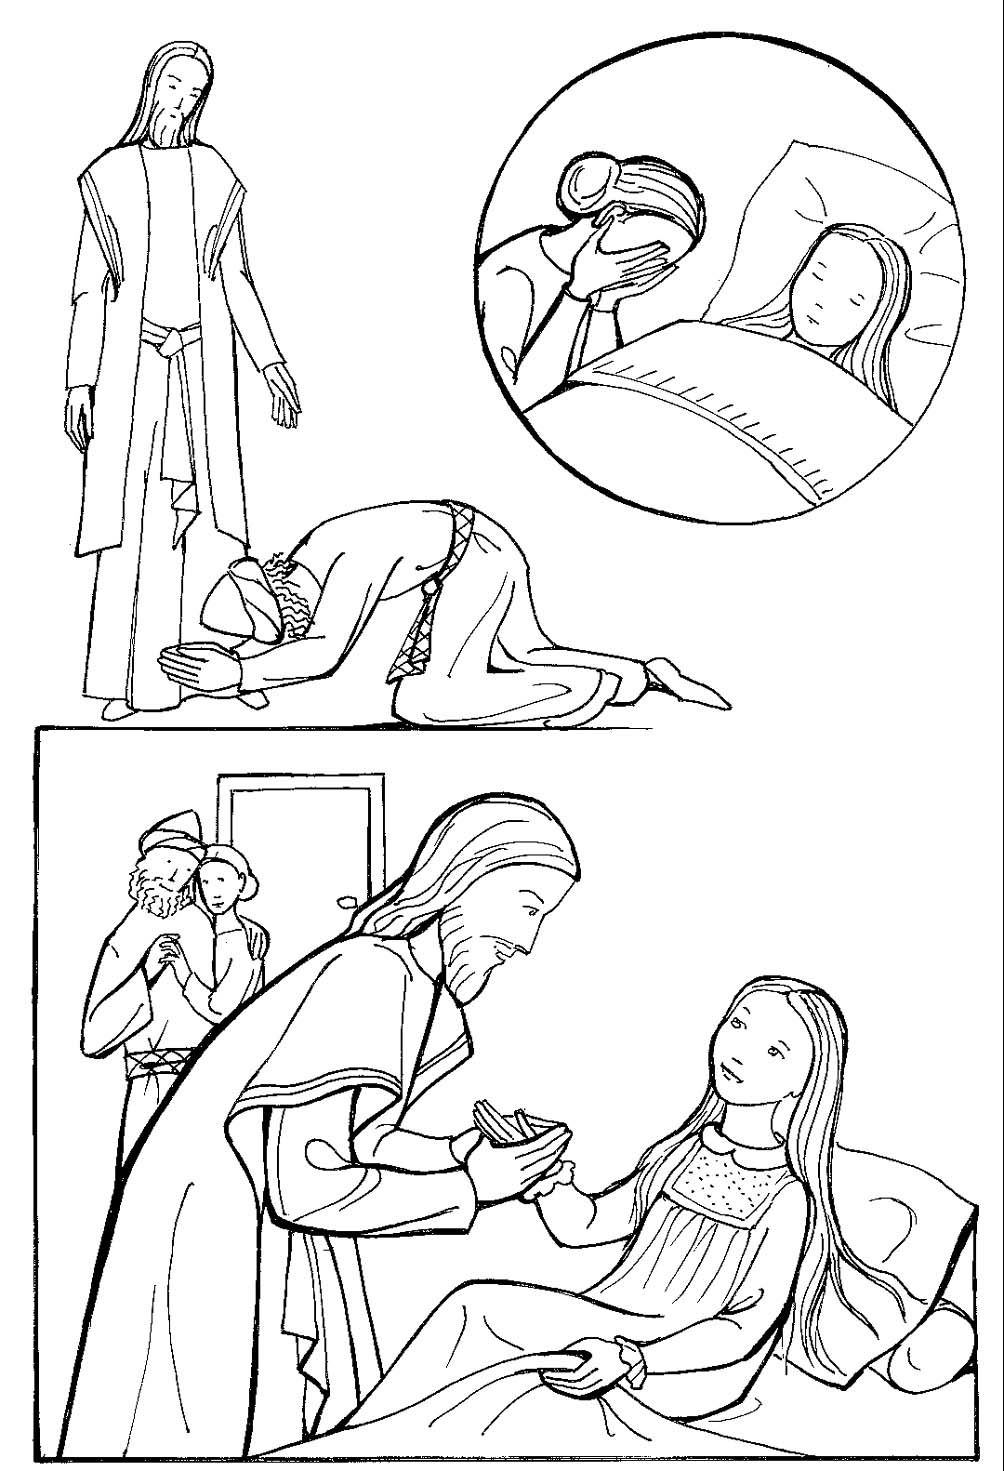 coloring bible story pictures for sunday school free printable coloring pages of creation story coloring sunday for pictures coloring school story bible